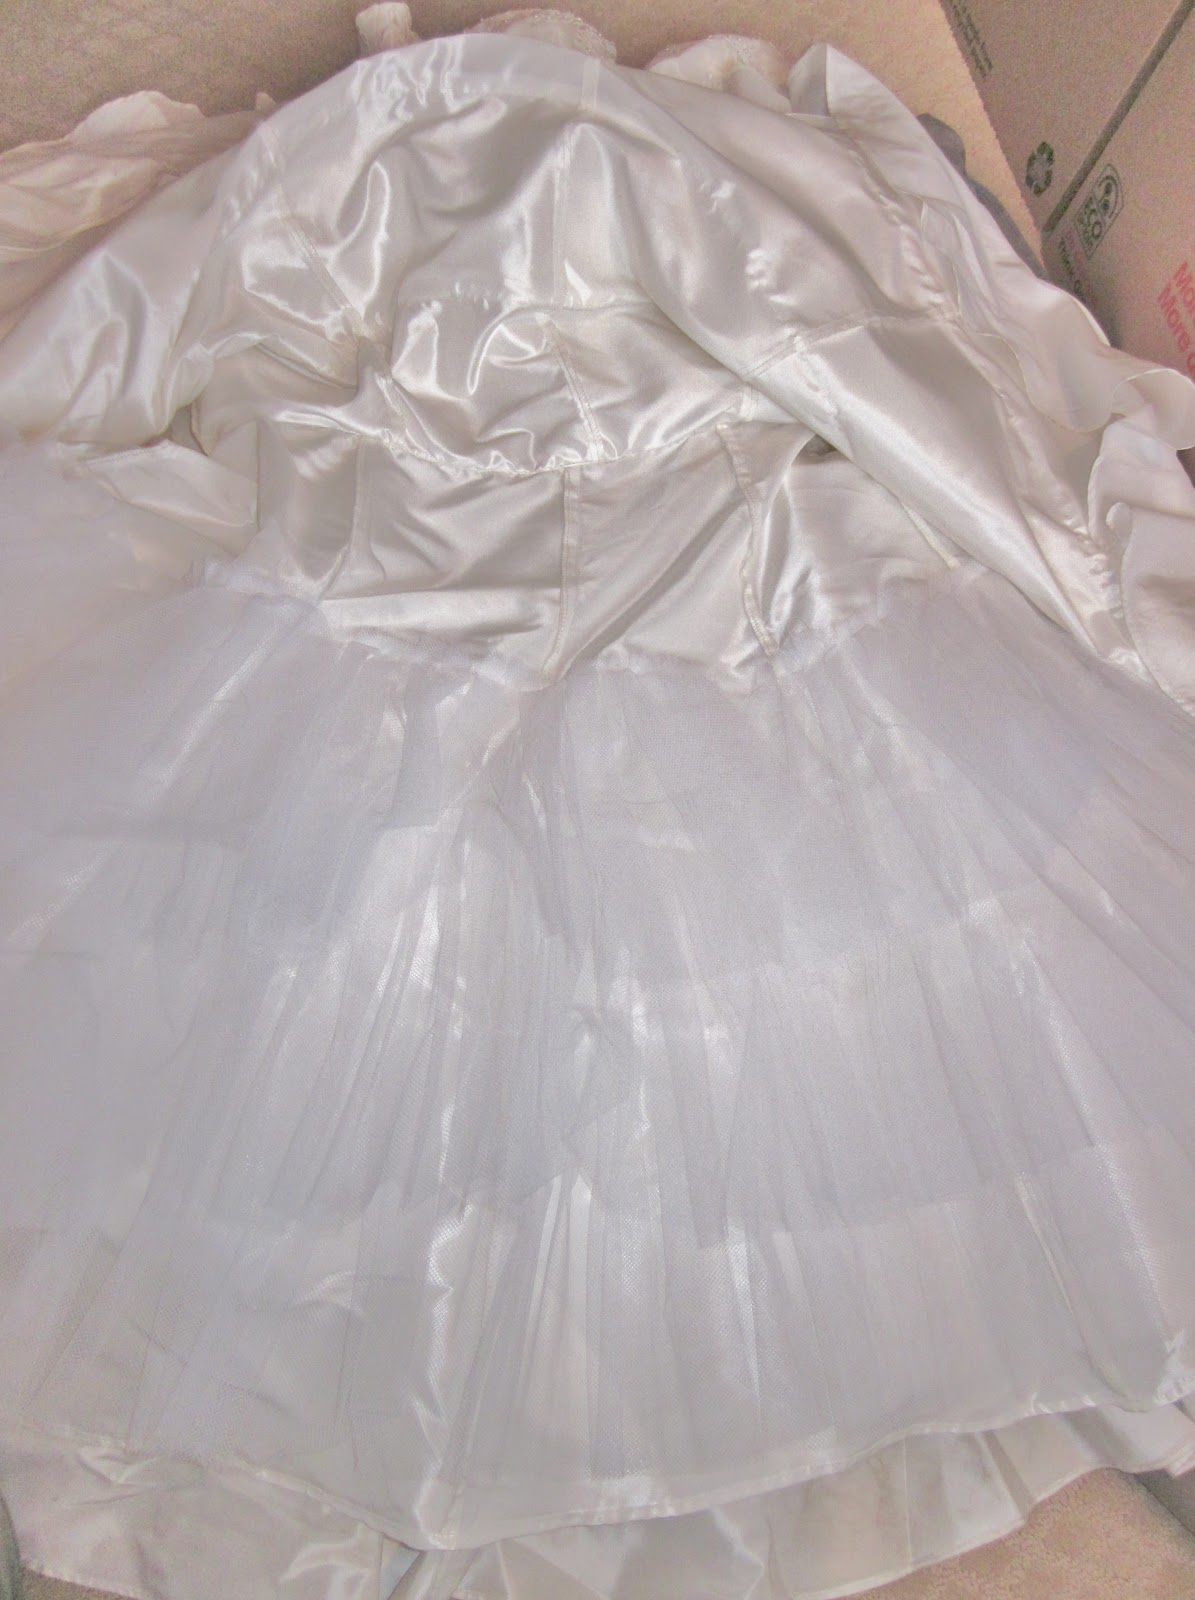 Bonnieprojects wedding dress wednesday the undergarments for Undergarments for wedding dress